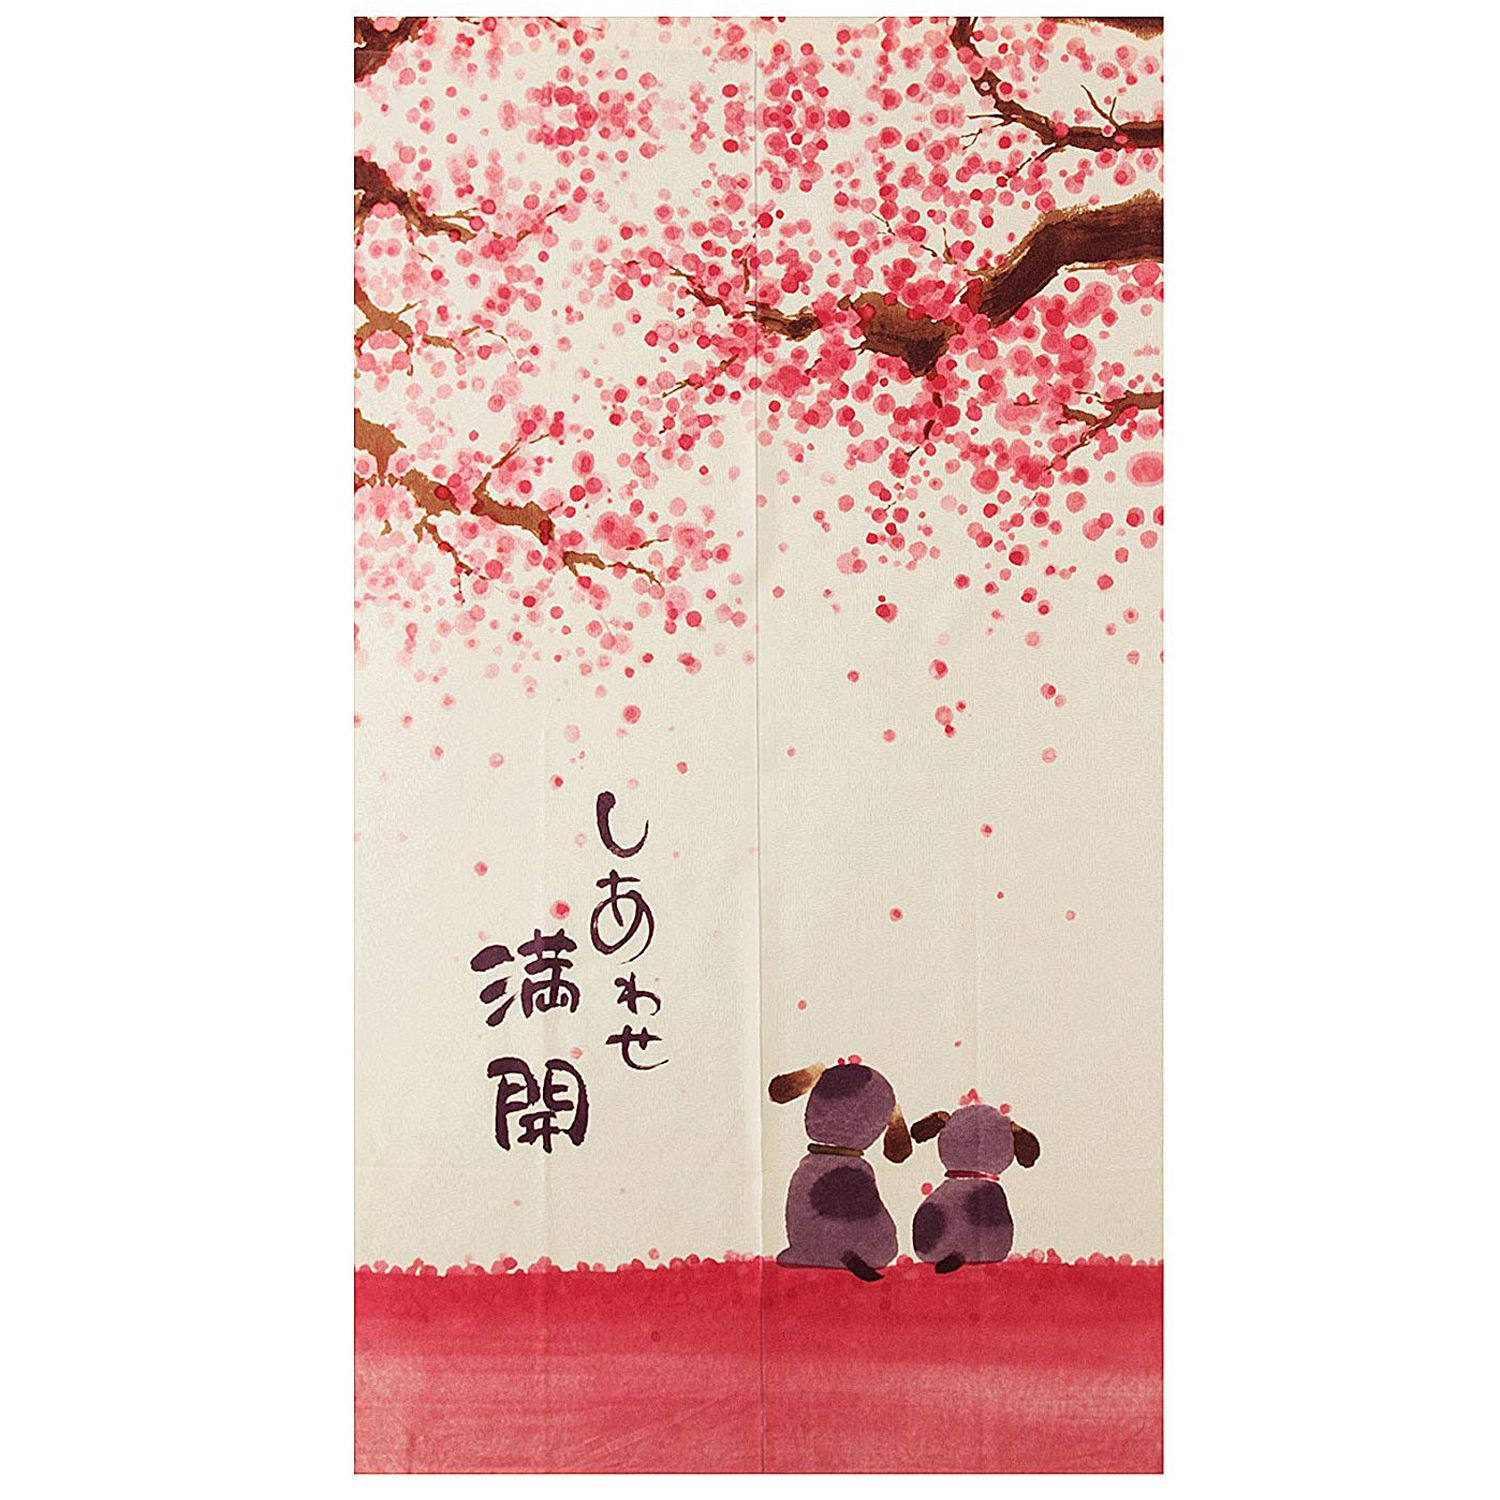 BMBY-Japanese Style Doorway Curtain 85X150Cm Happy Dogs Cherry Blossom